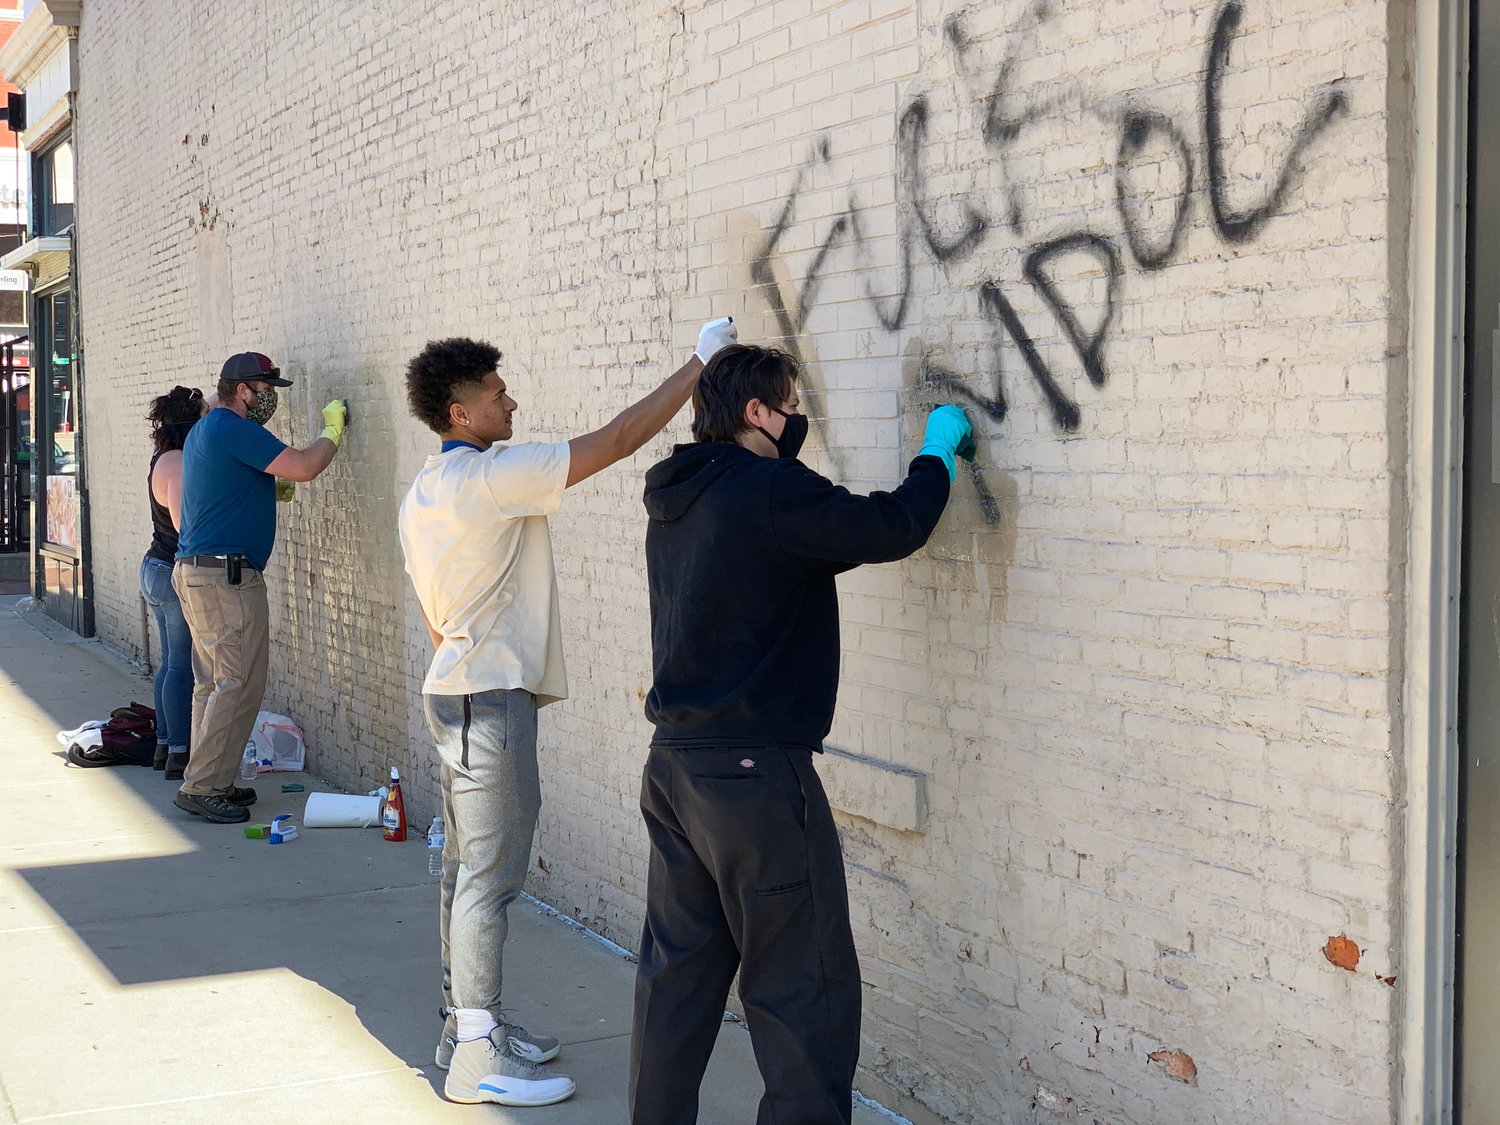 Volunteers scrub graffiti off a wall of a building this morning on Allegan Street between Washington Square and Grand Avenue as part of a clean up organized by Downtown Lansing Inc.